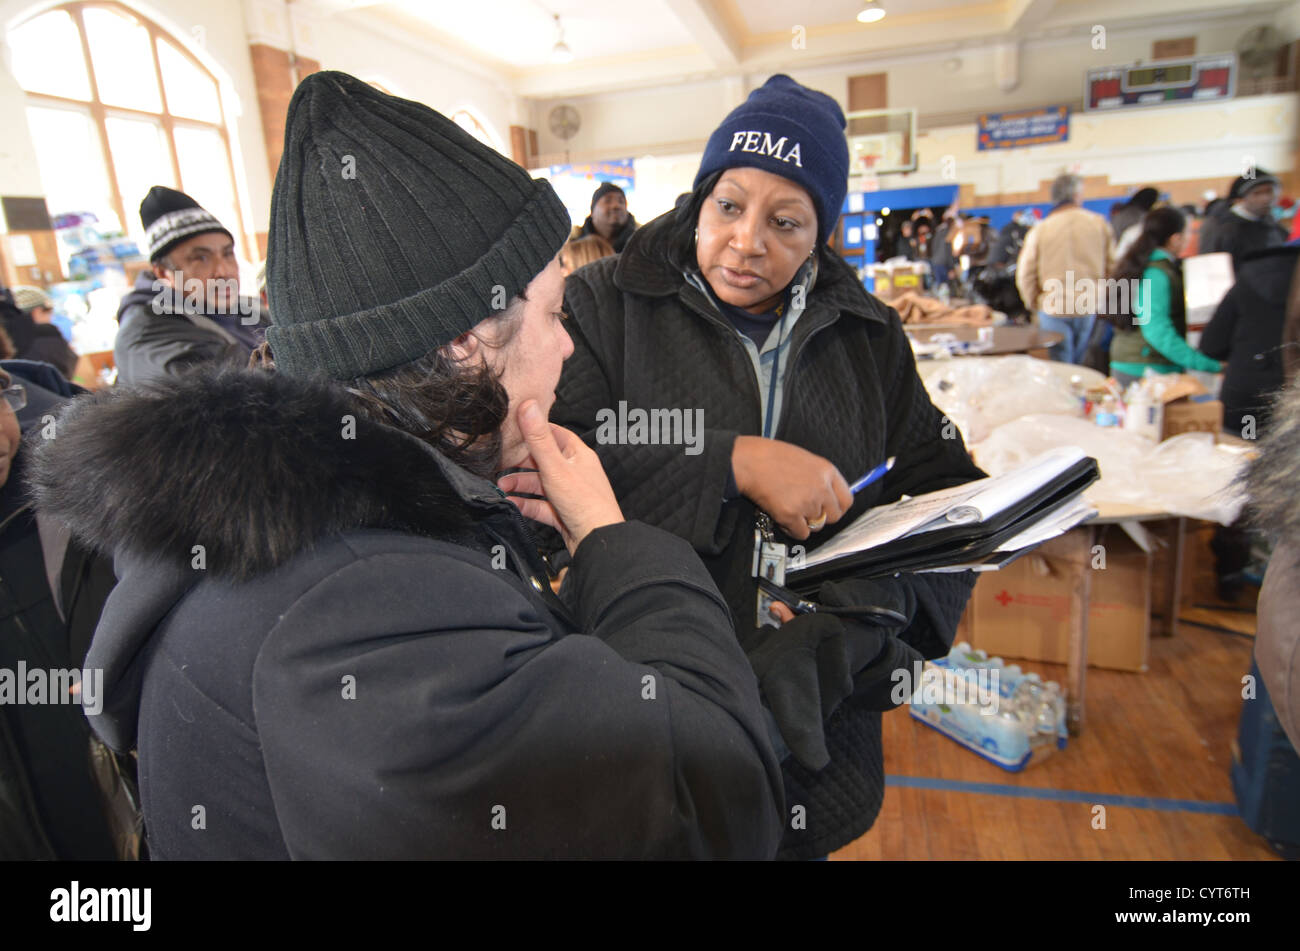 A FEMA community relations worker talks to a homeless woman in the Rockaways area near New York City who is in need - Stock Image